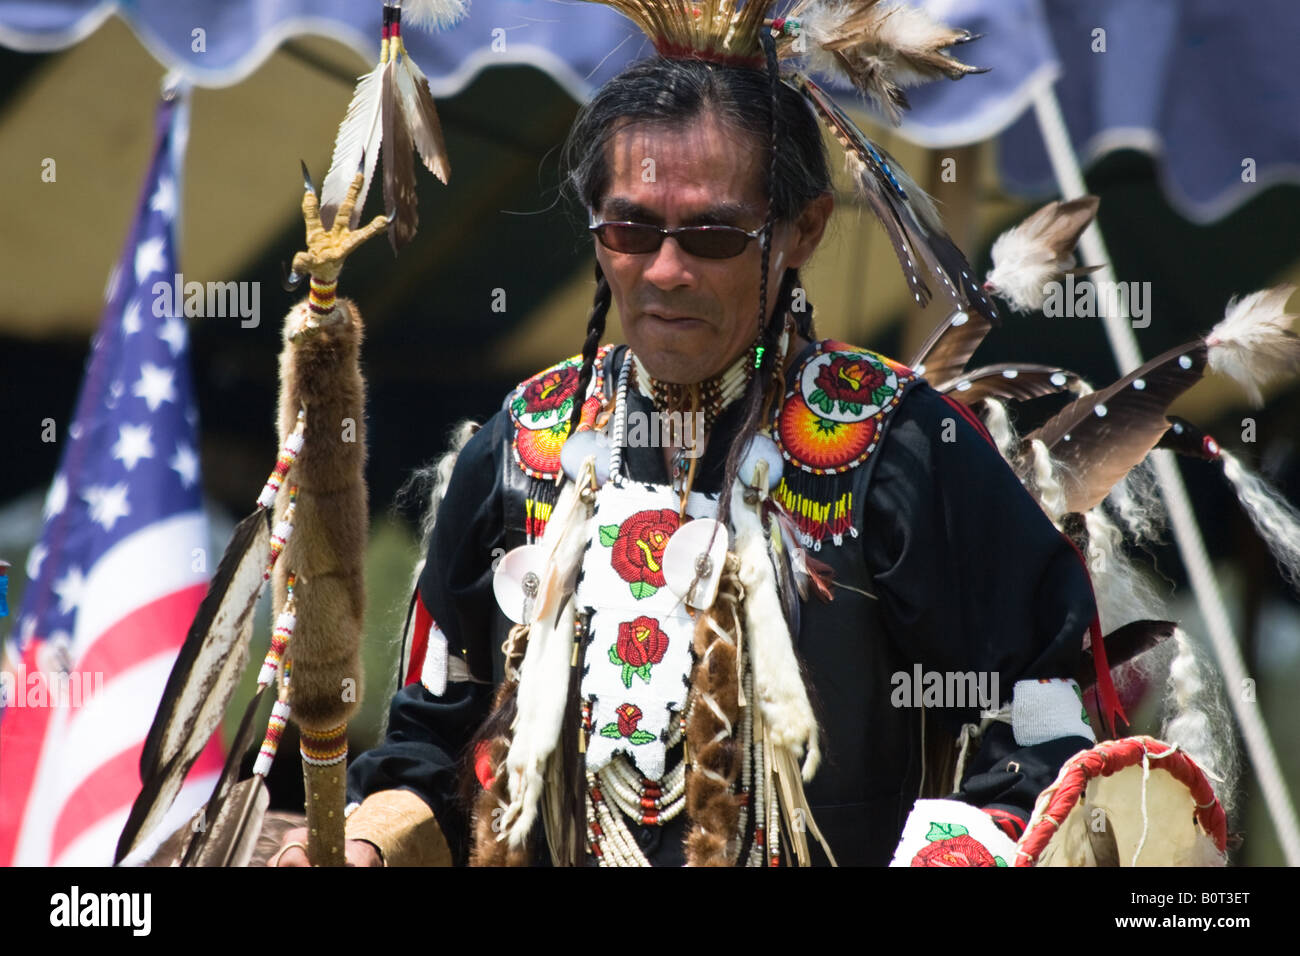 American Indian dancer, U.S. flag in the background, at the 8th Annual Red Wing Native American PowWow in Virginia - Stock Image